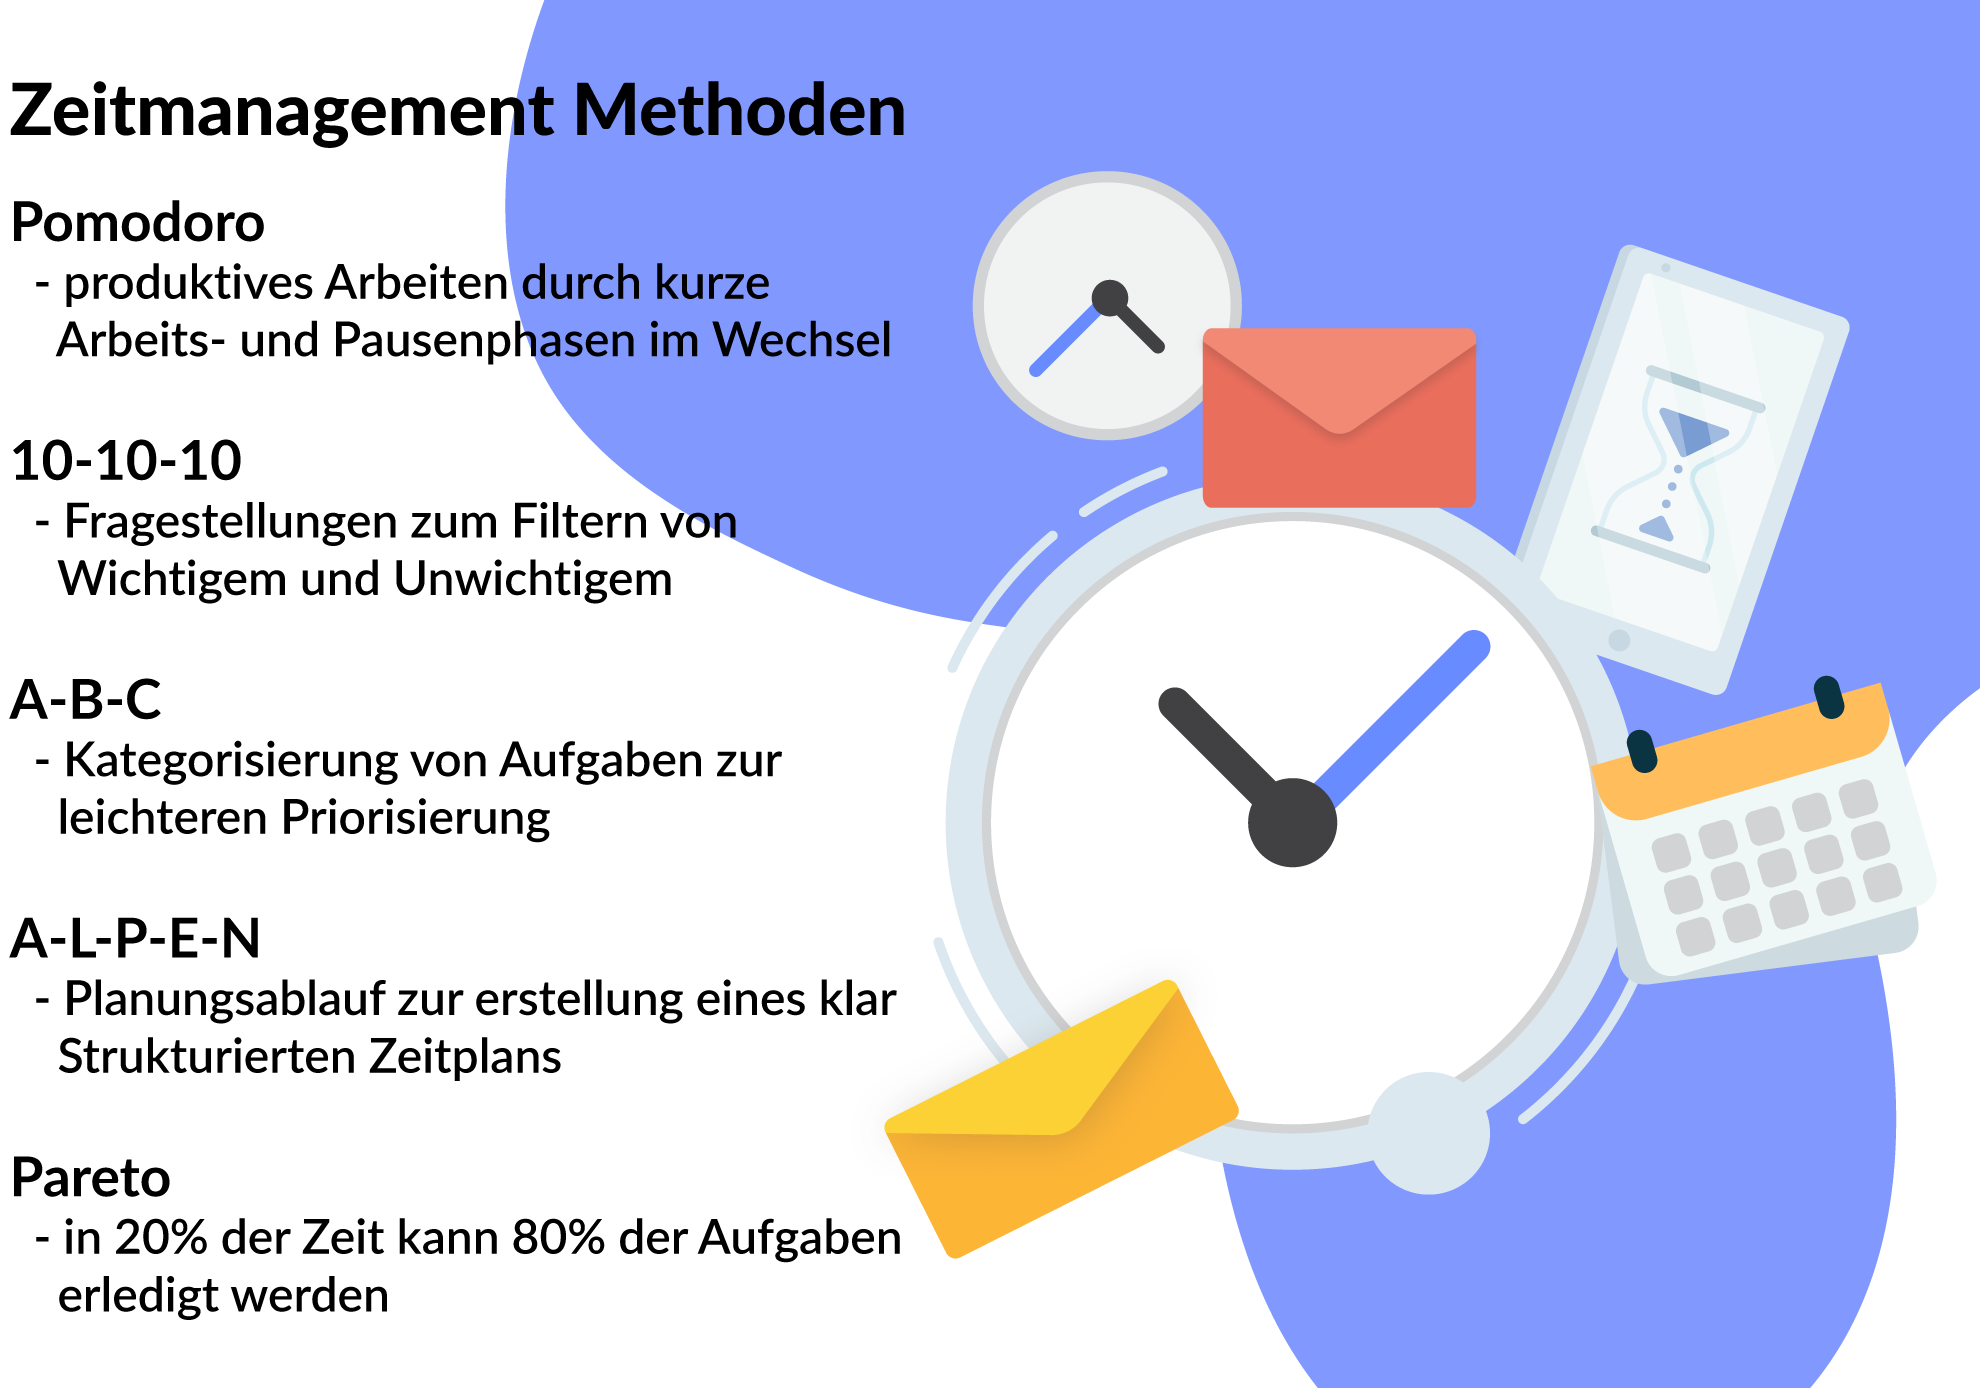 zeitmanagement2 1